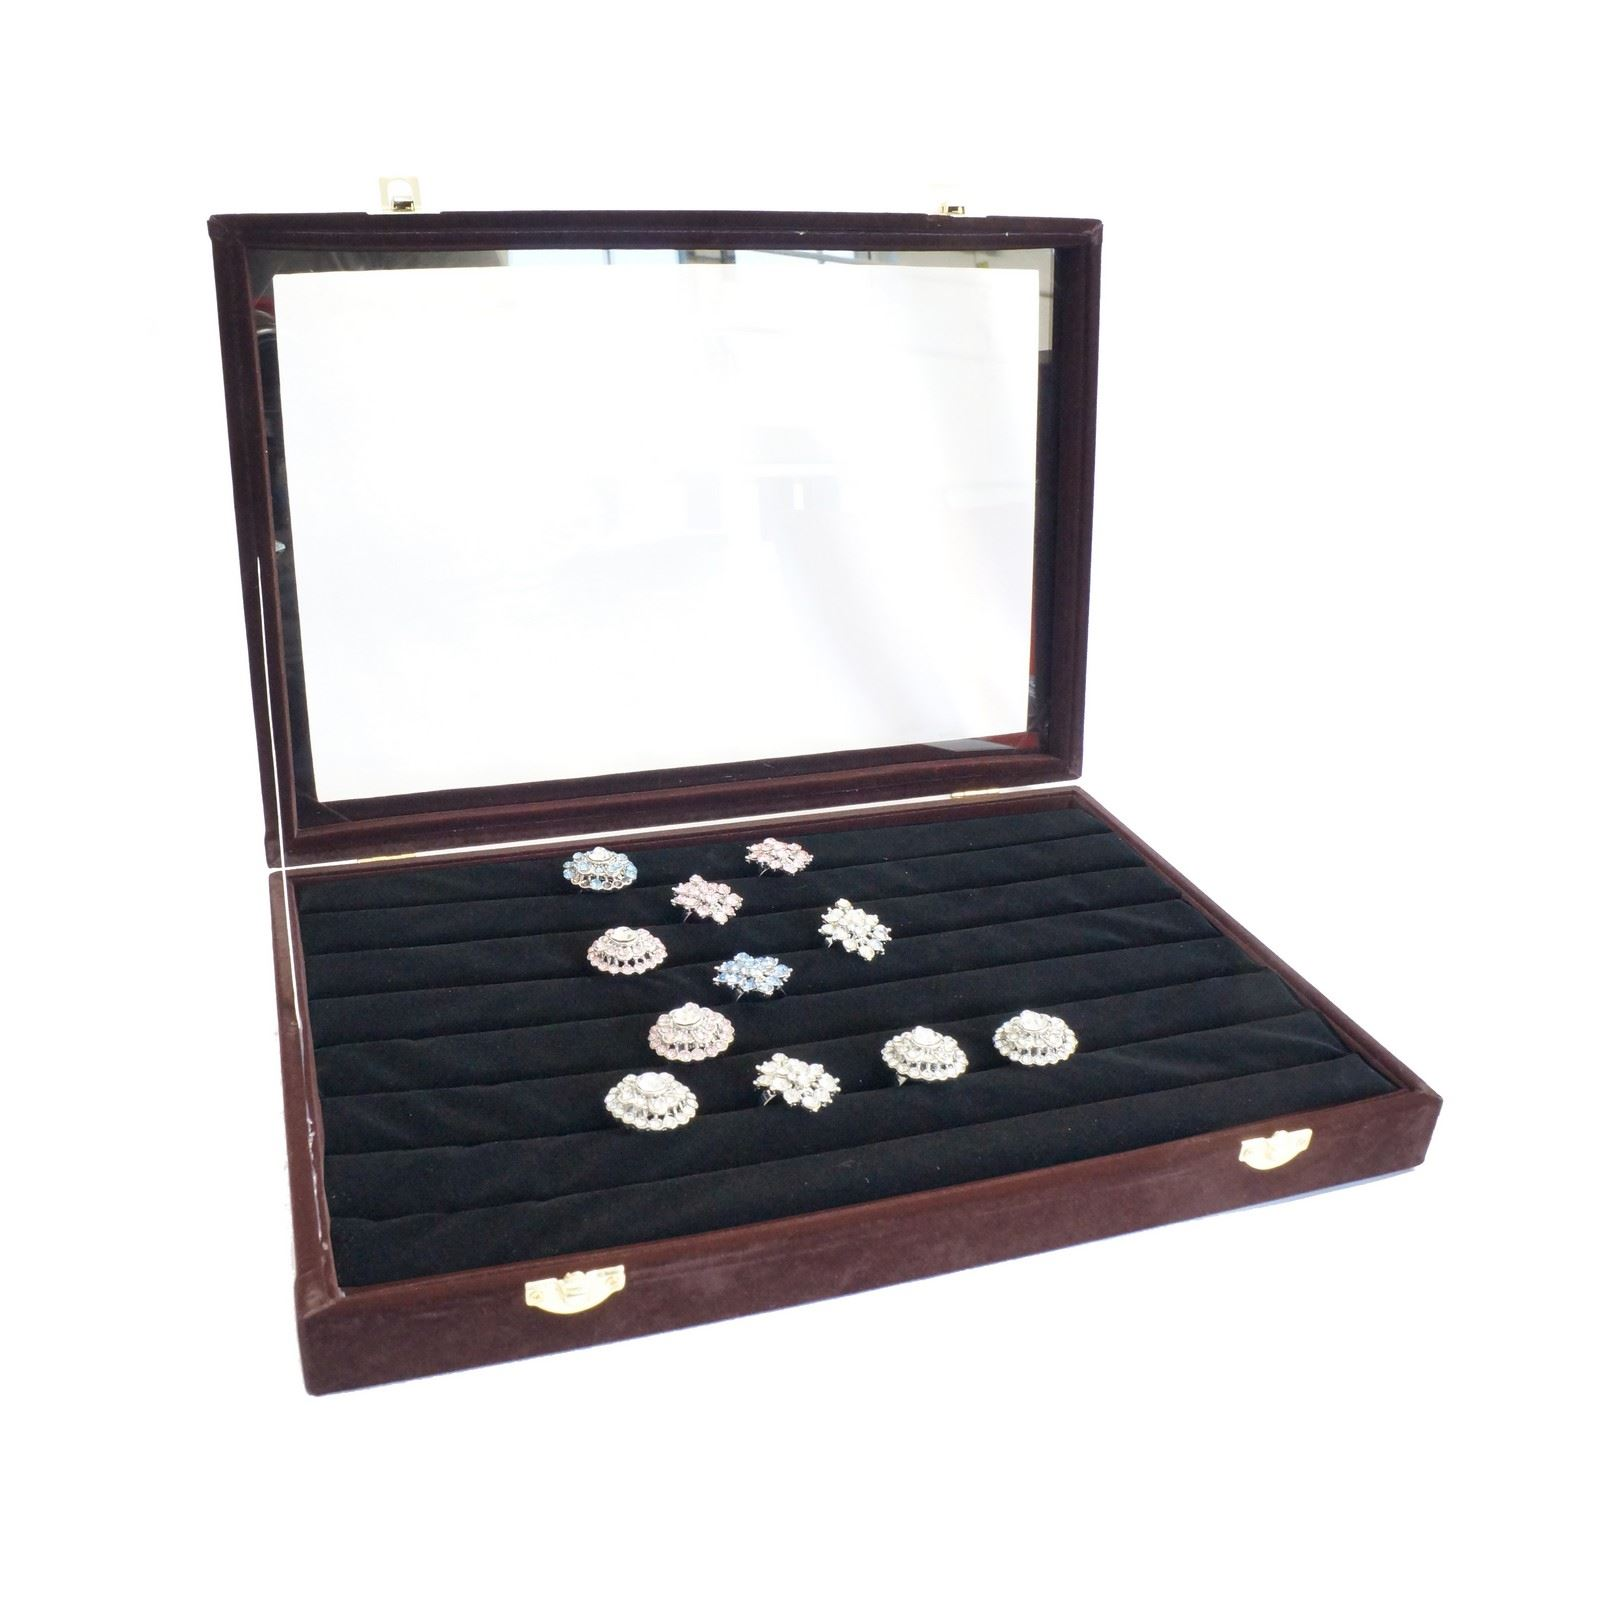 #624244 Large Velvet Glass Top Jewellery Rings Cufflinks Display  with 1600x1600 px of Recommended Jewellery Glass Display Cabinets Uk 16001600 save image @ avoidforclosure.info